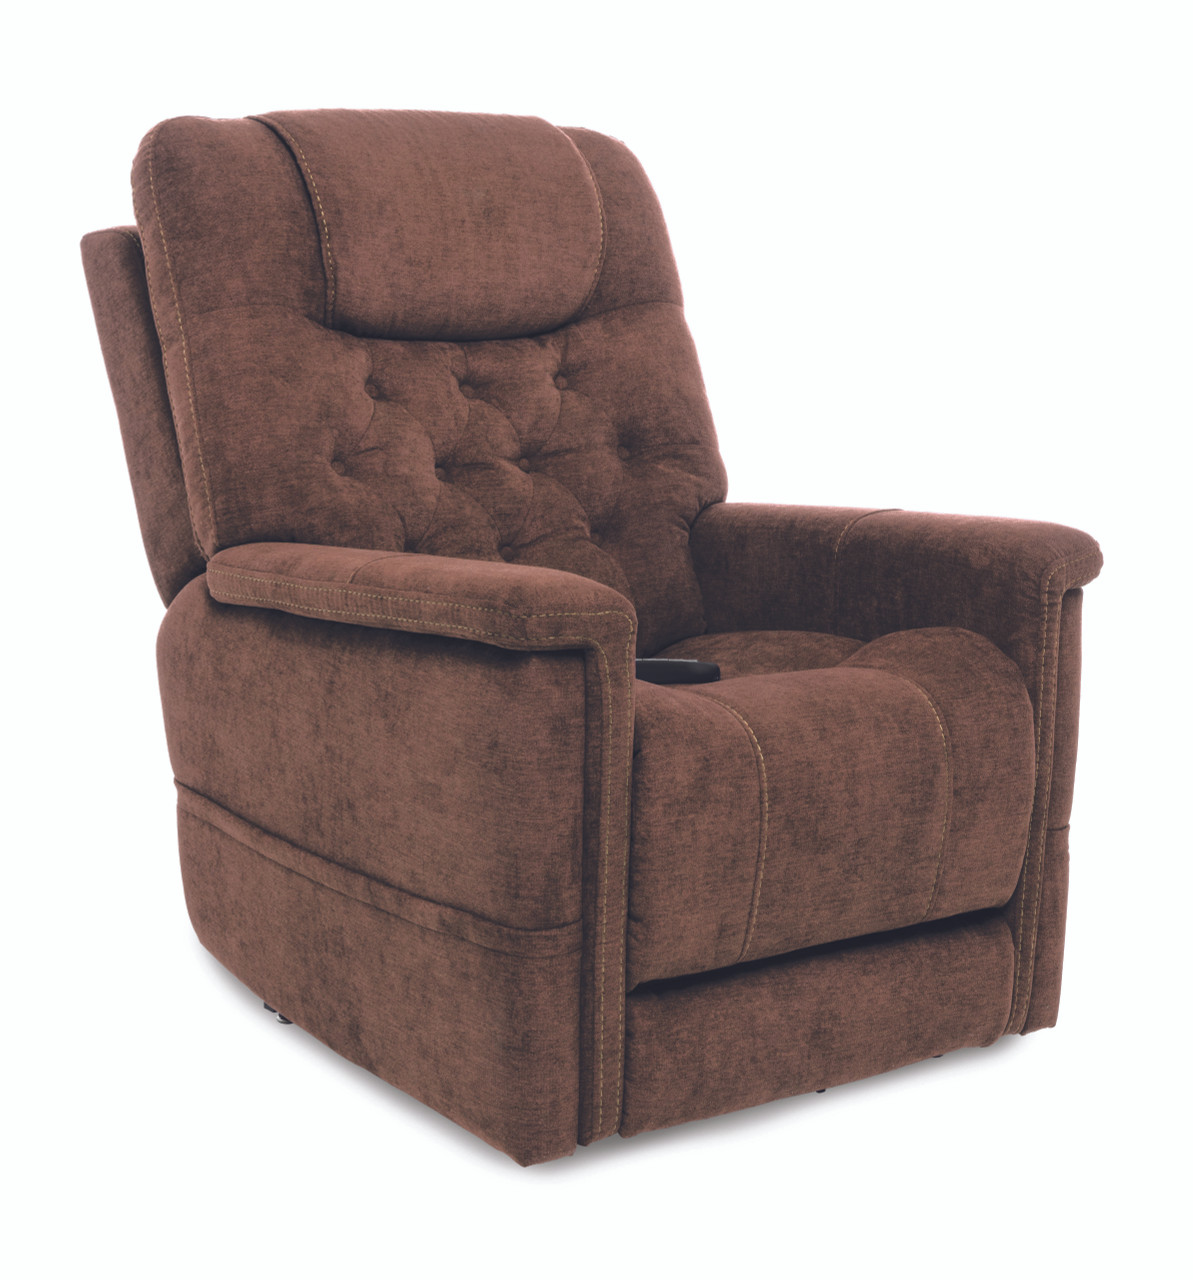 Legacy Viva!Lift Seated in brown